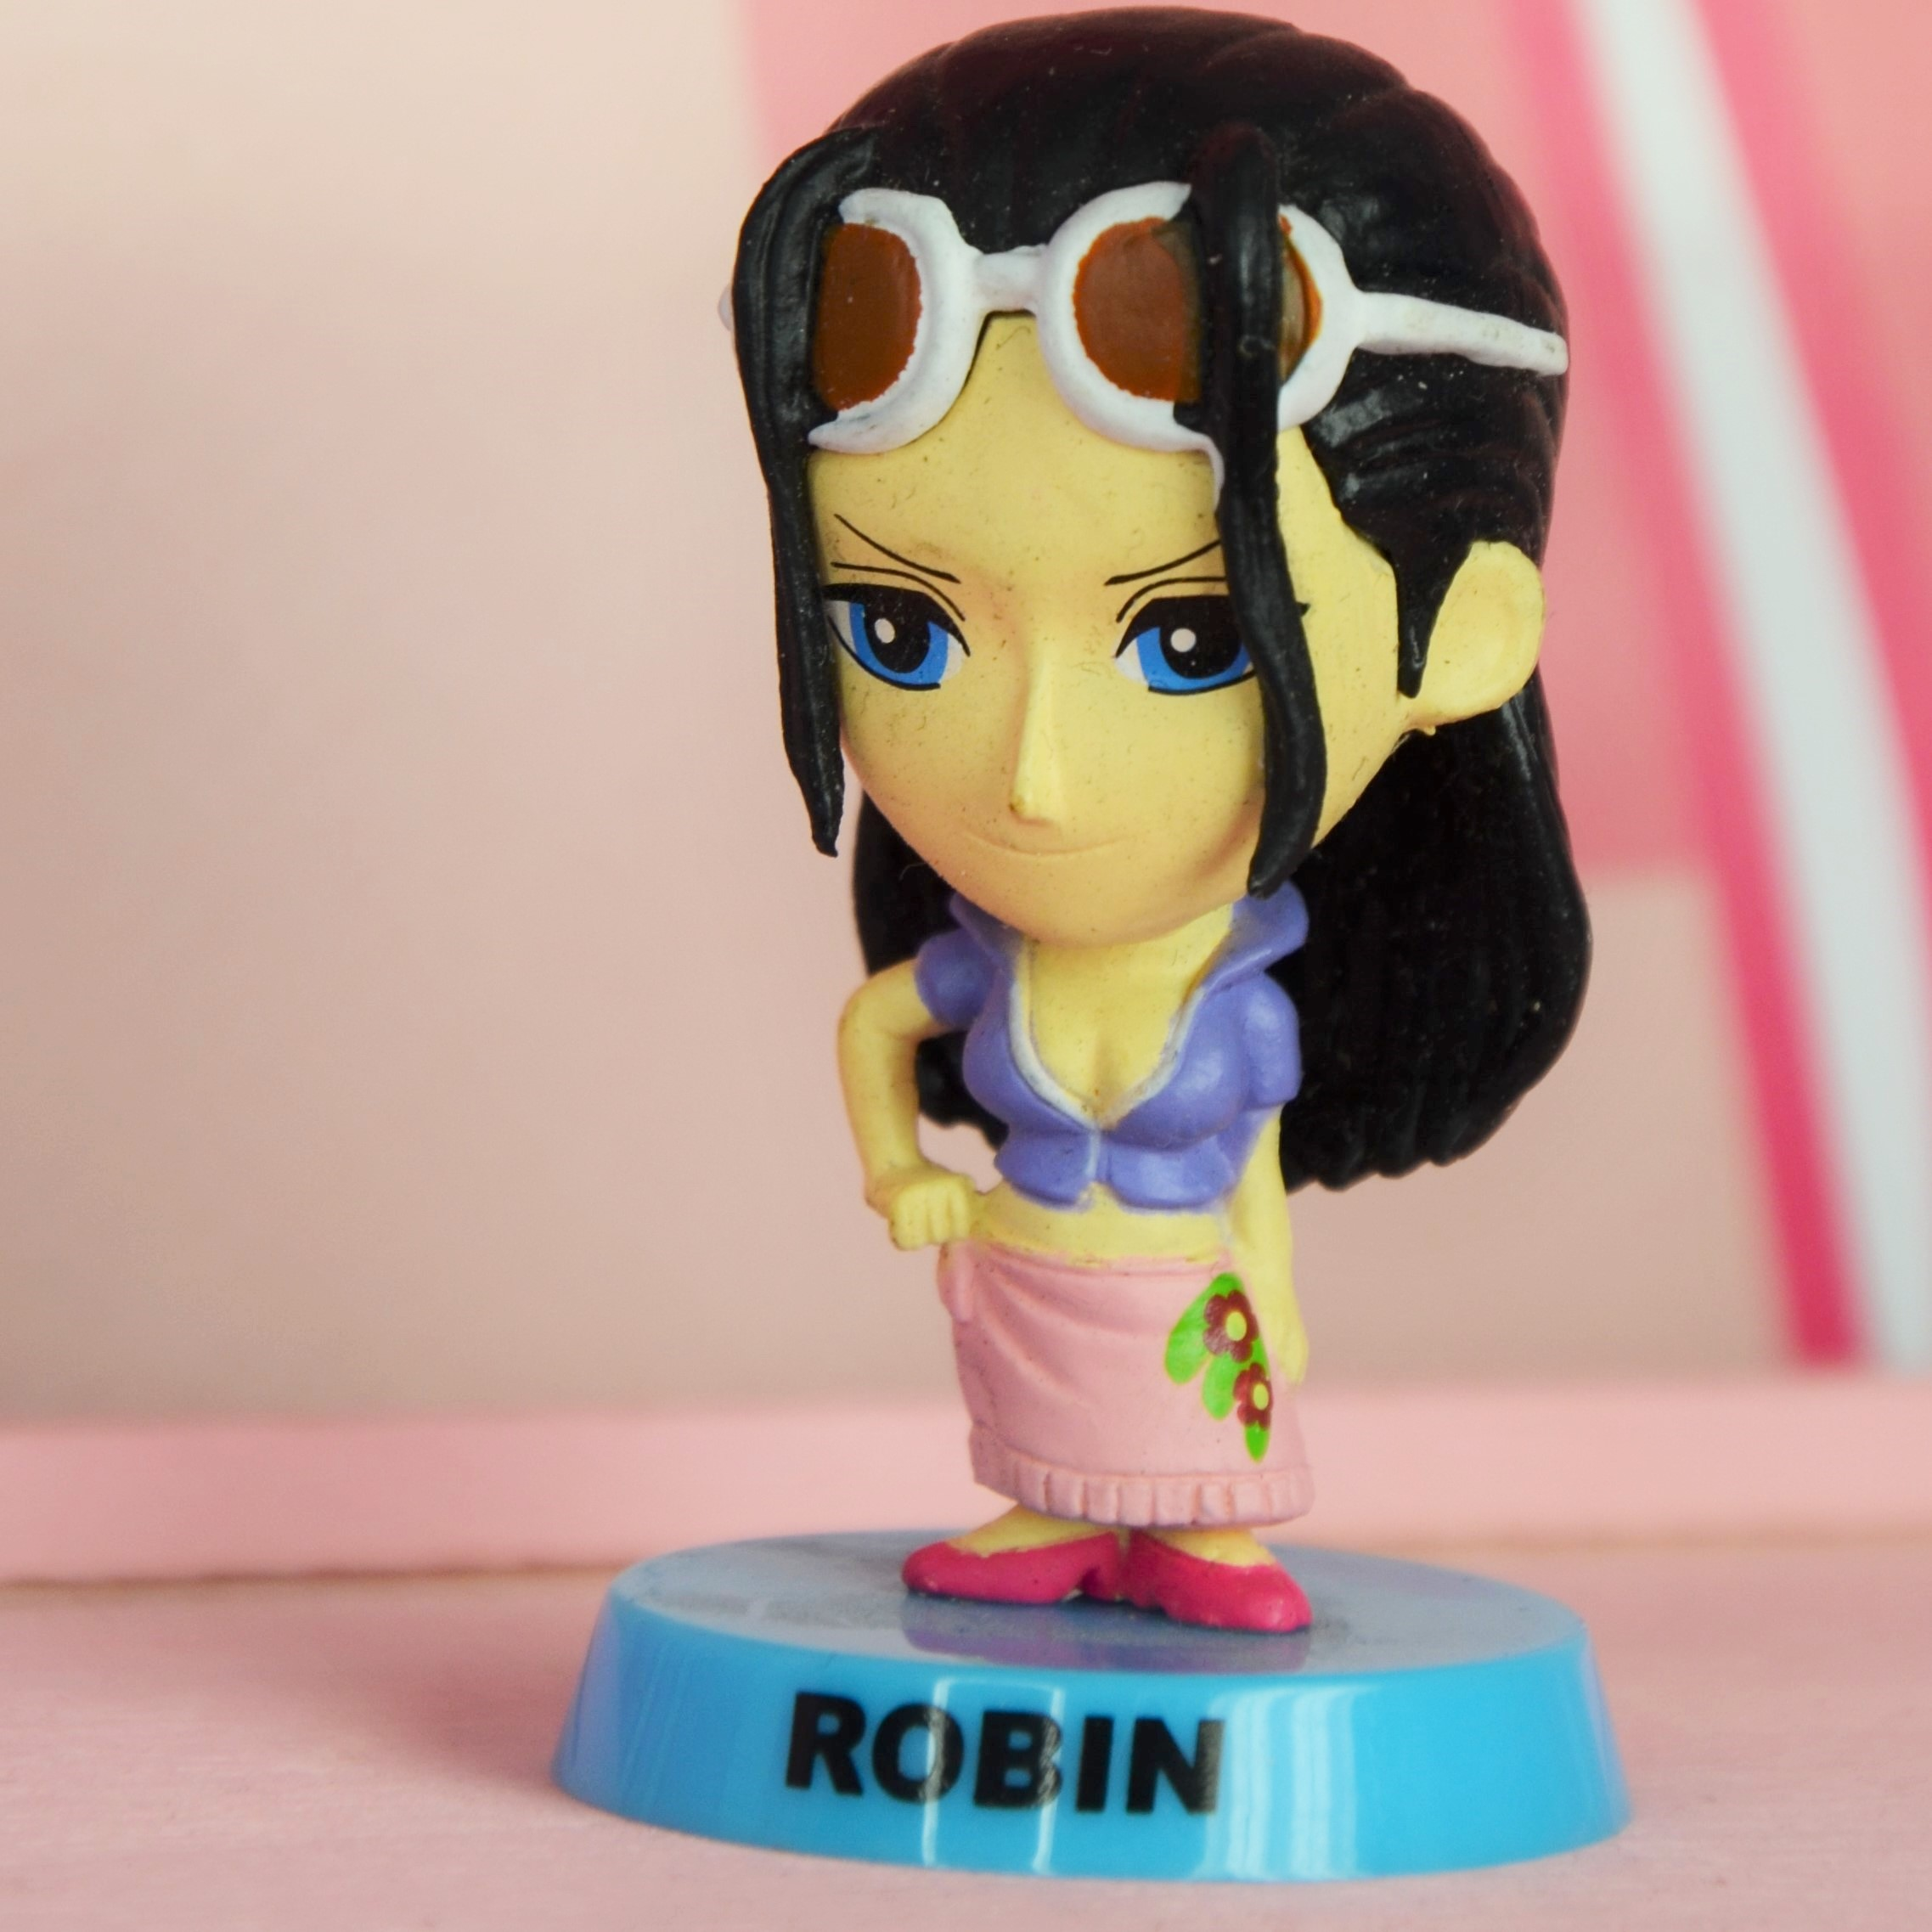 One Piece Robin Bobble Head Figure - Moving Head